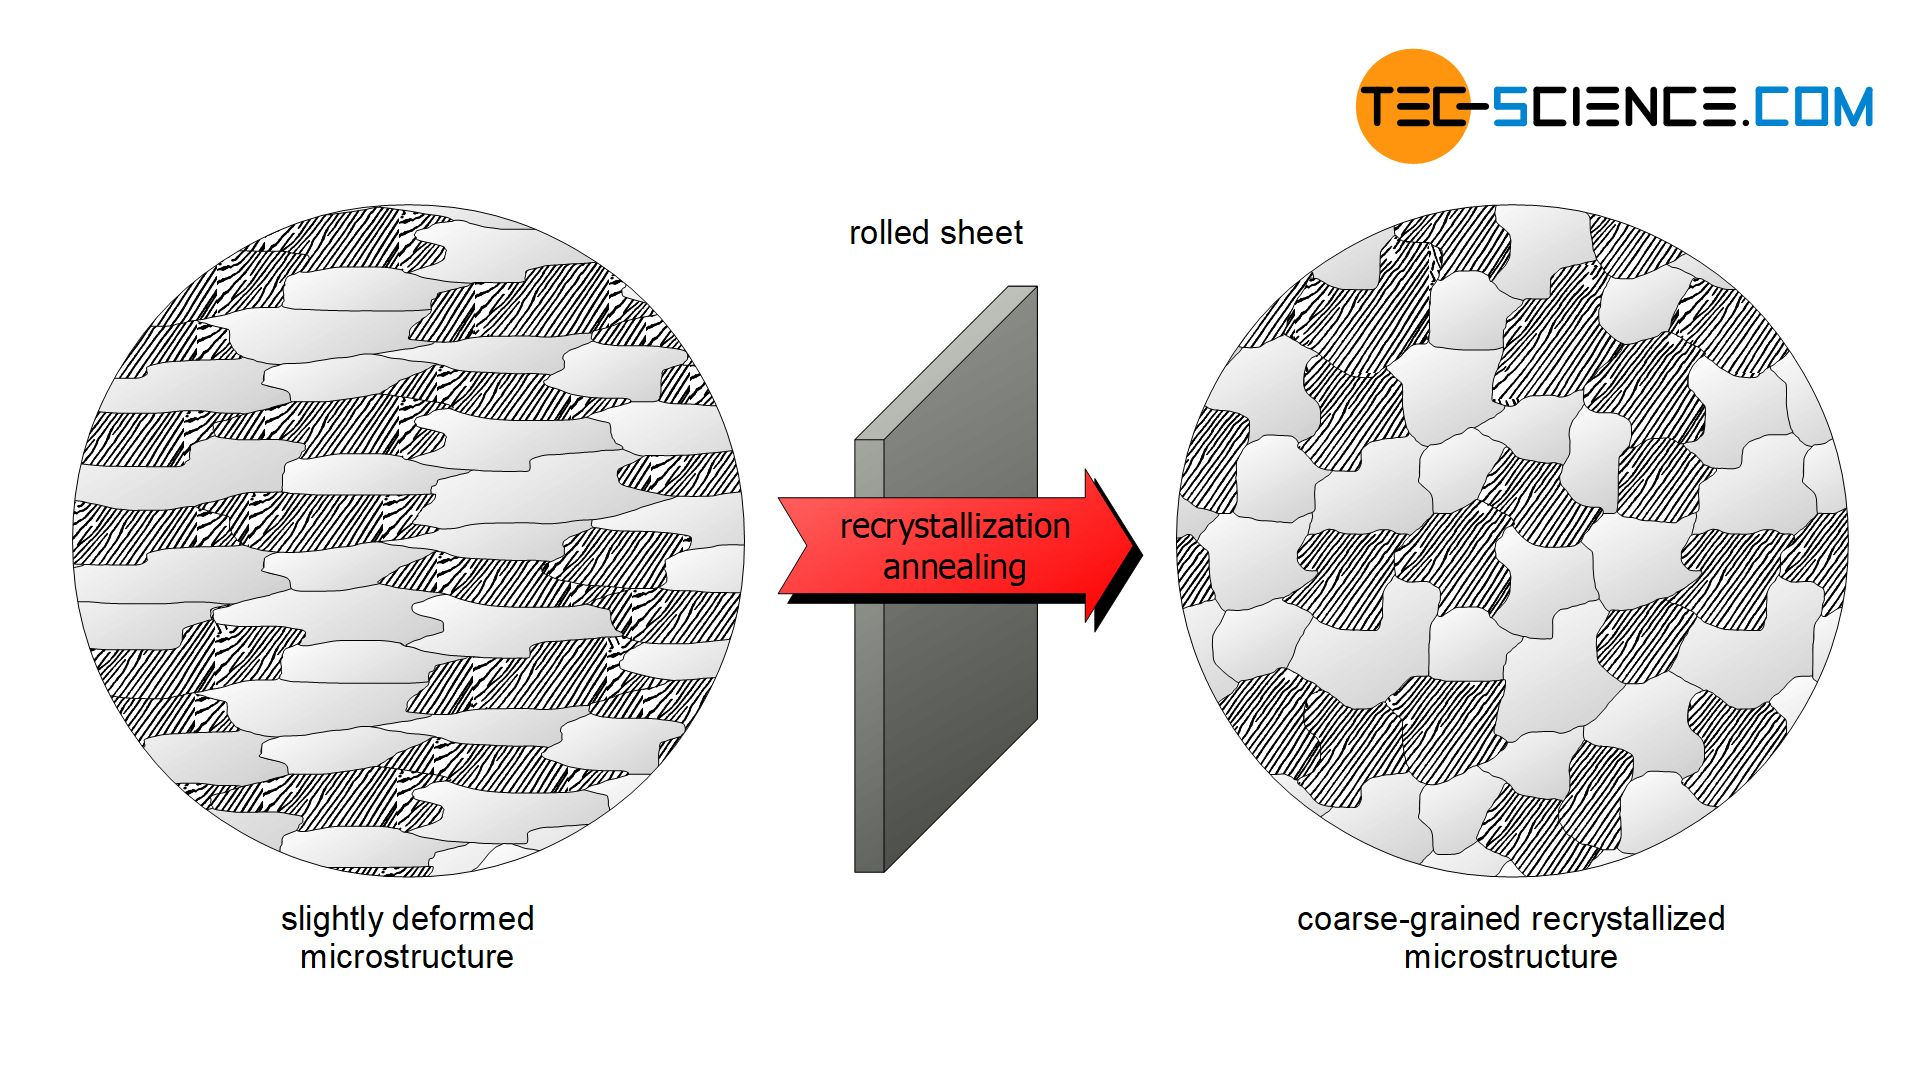 Recrystallization annealing of a rolled sheet